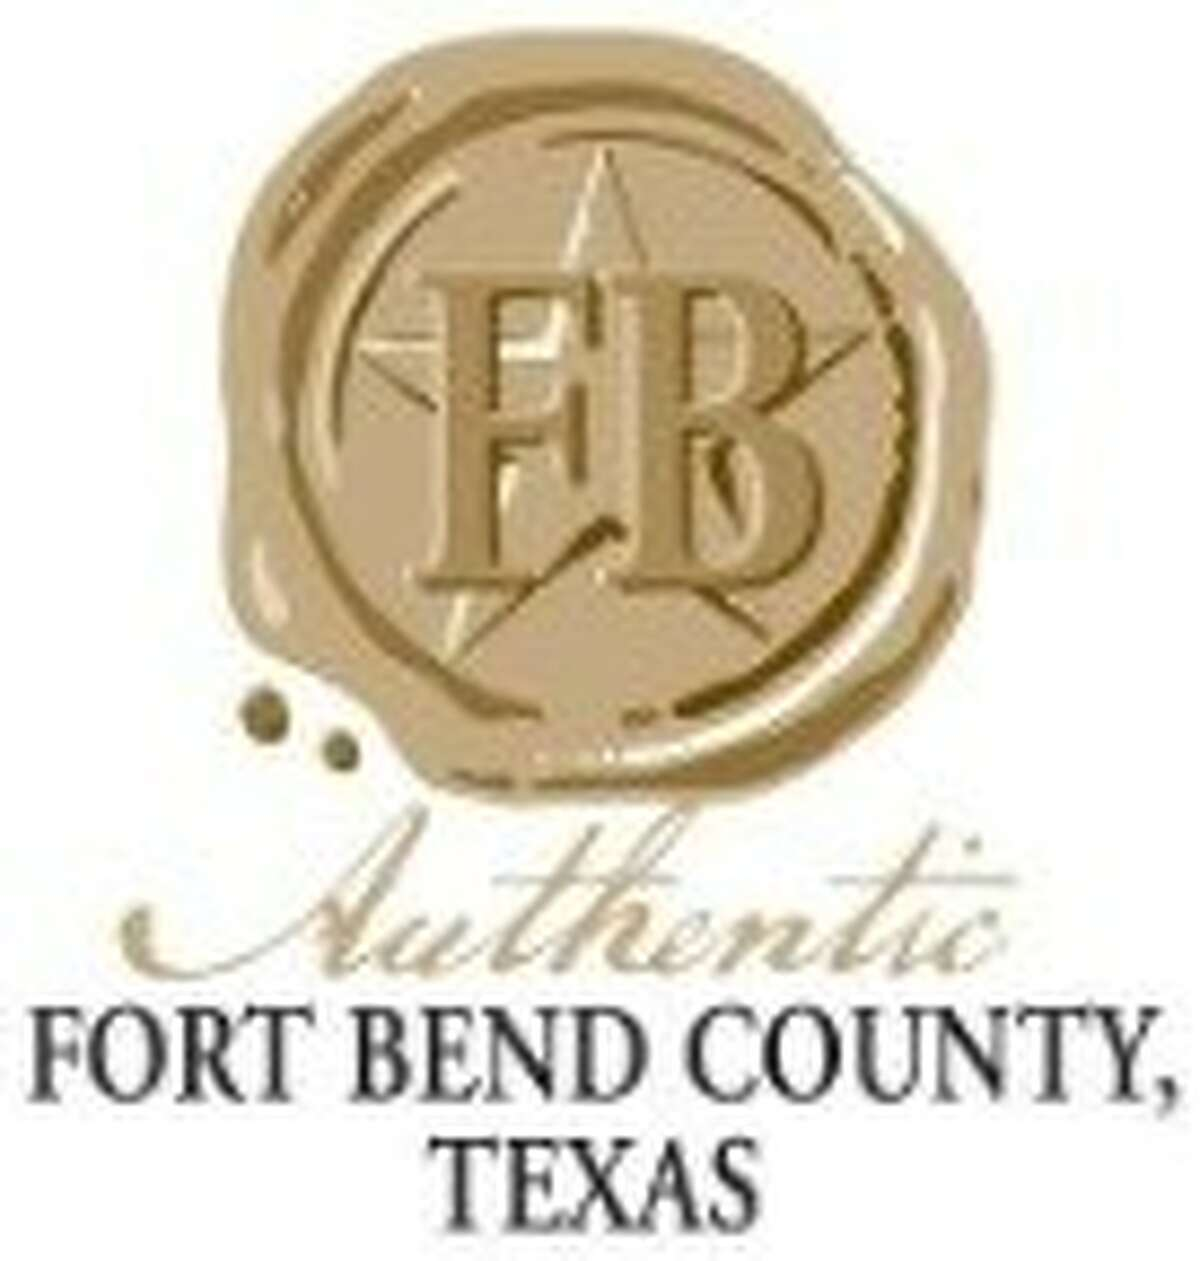 Newly released data from the U.S. Bureau of Labor Statistics (BLS) reports that Fort Bend County ranks eighth for employment growth out of the 323 largest counties in the United States for the third quarter of 2011.